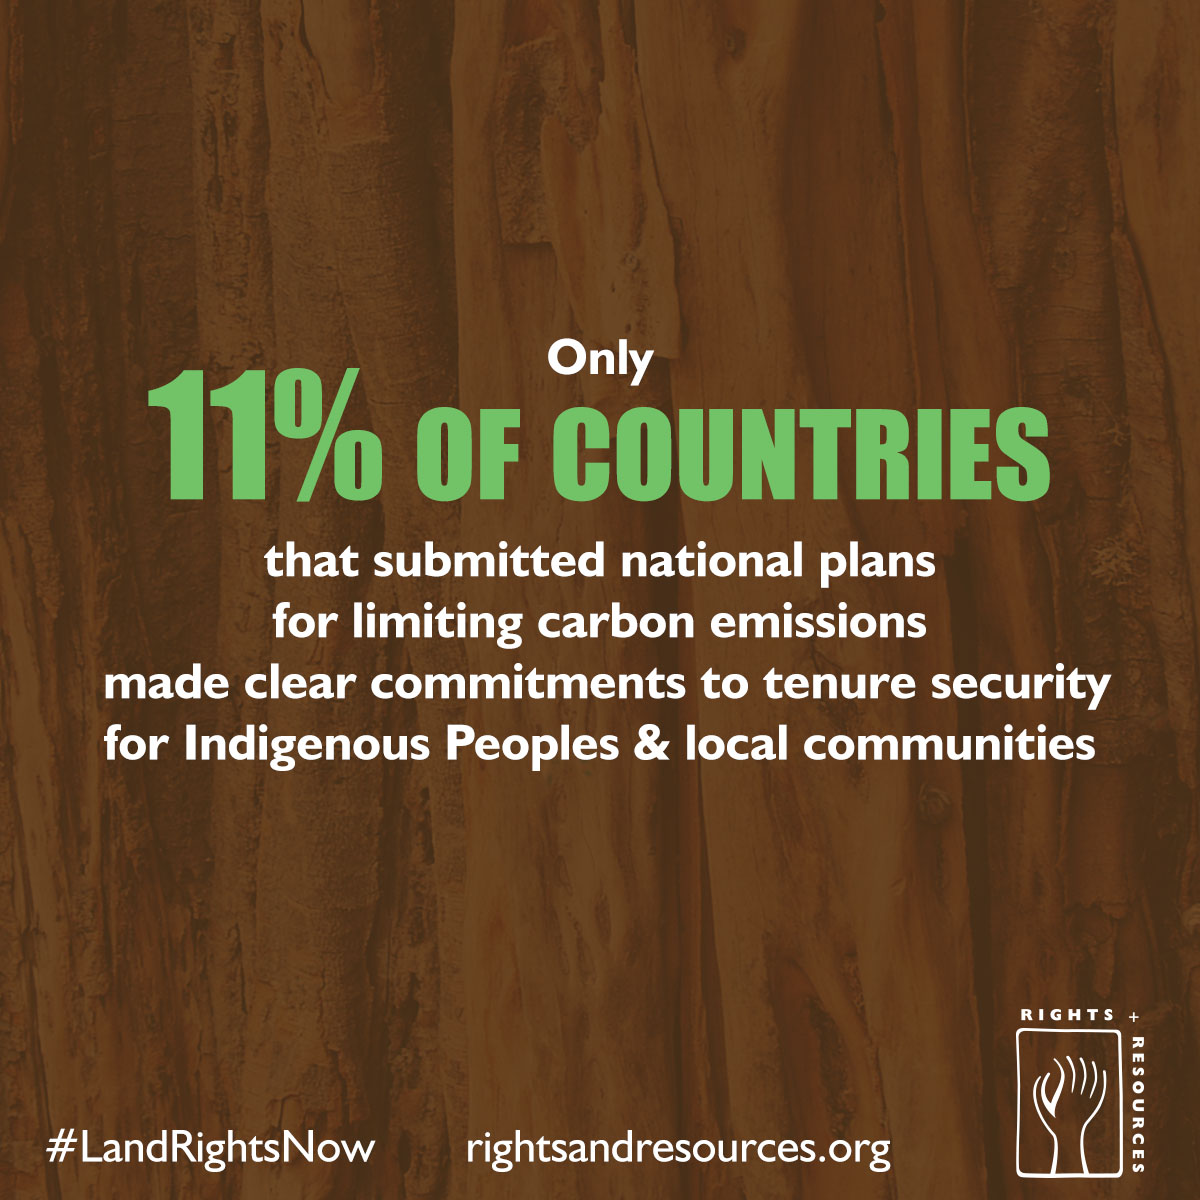 RRI Analysis | Indigenous Peoples & Local Community Tenure in the INDCs: Status and Recommendations | 11% of countries clearly committed to community tenure rights as climate change mitigation strategy